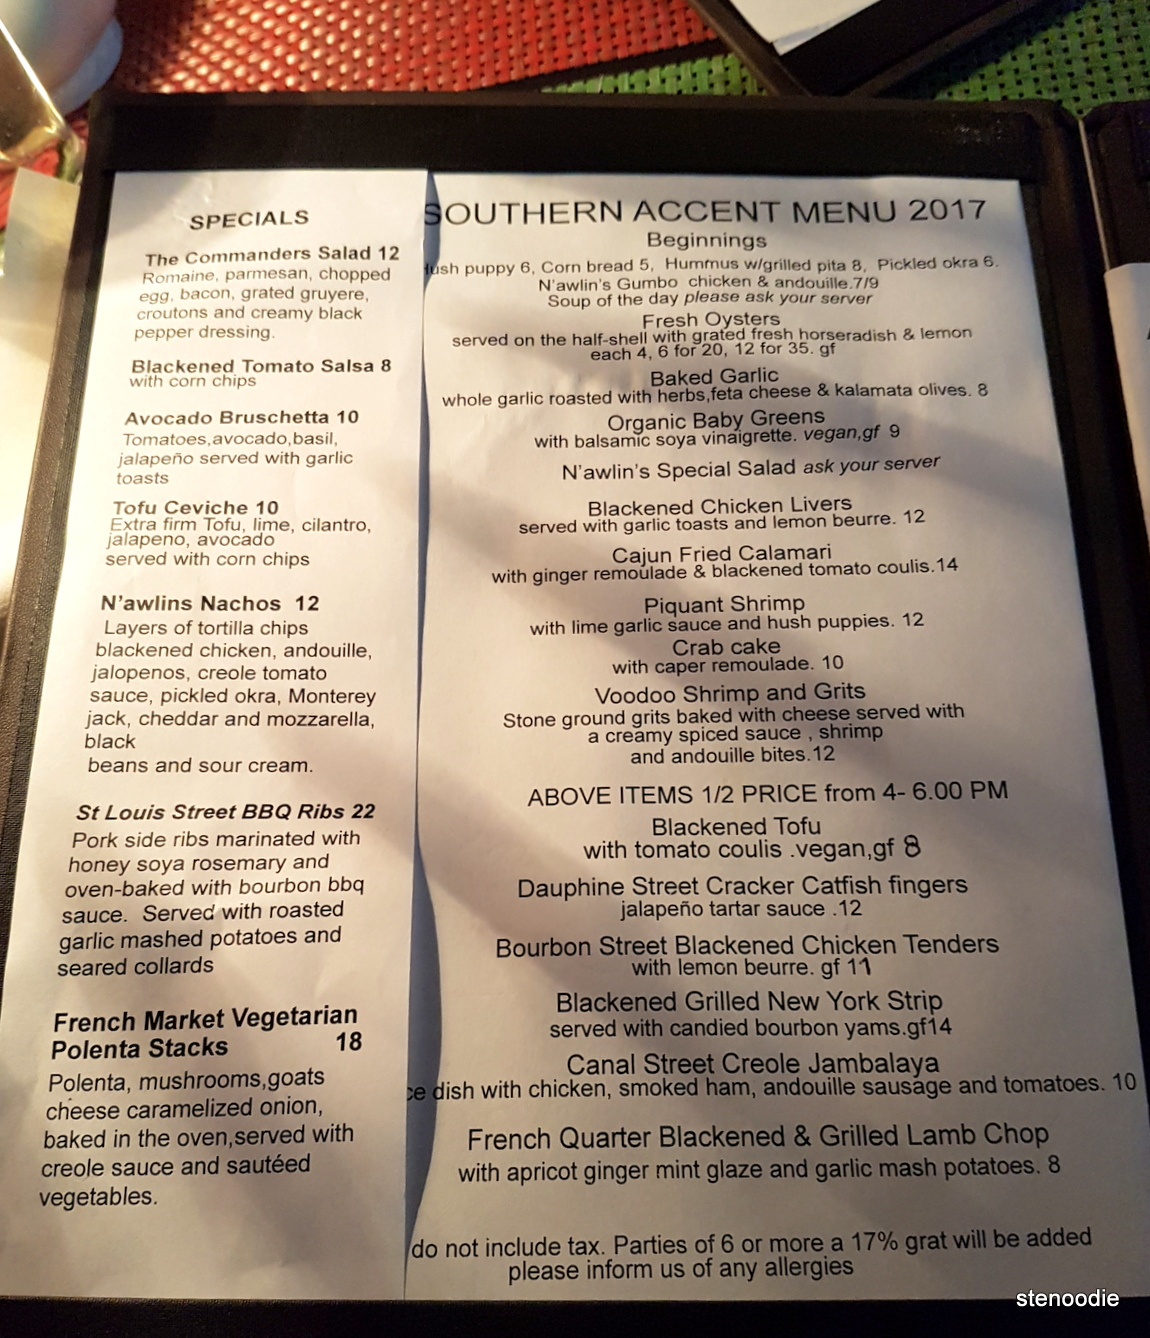 Southern Accent Specials menu and prices 2017